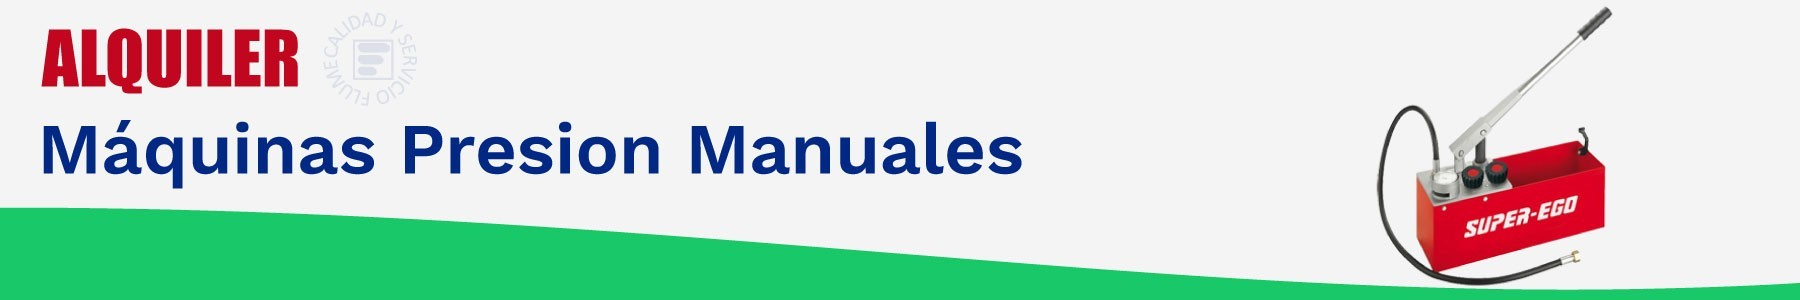 Alquiler maquinas presion manuales